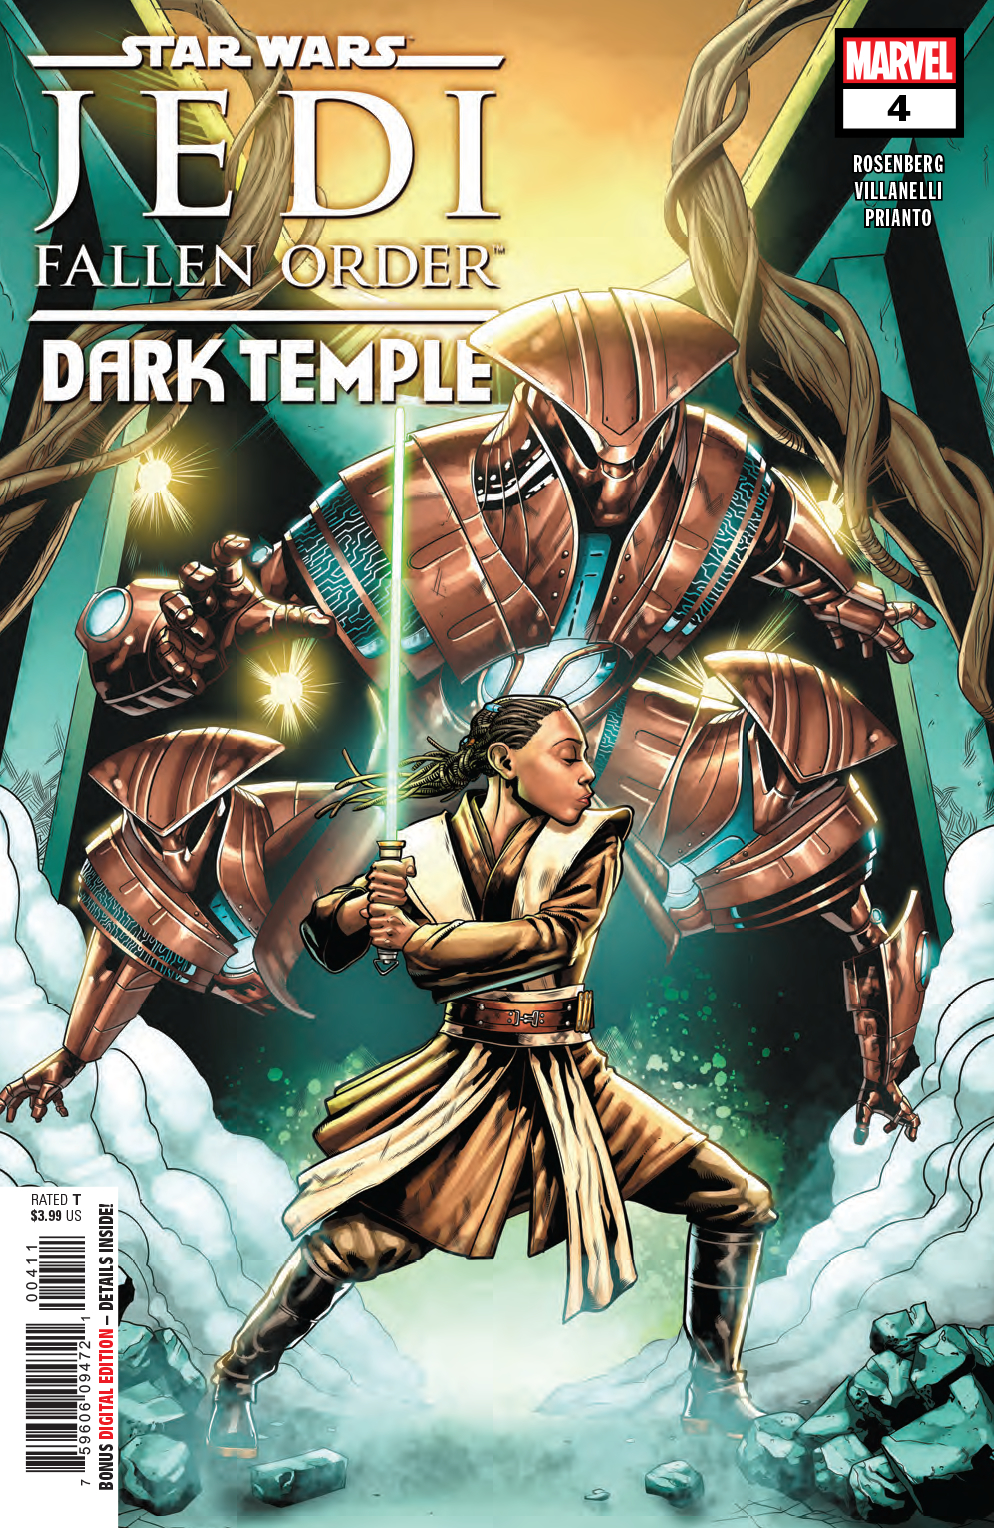 STAR WARS JEDI FALLEN ORDER DARK TEMPLE #4 (OF 5)